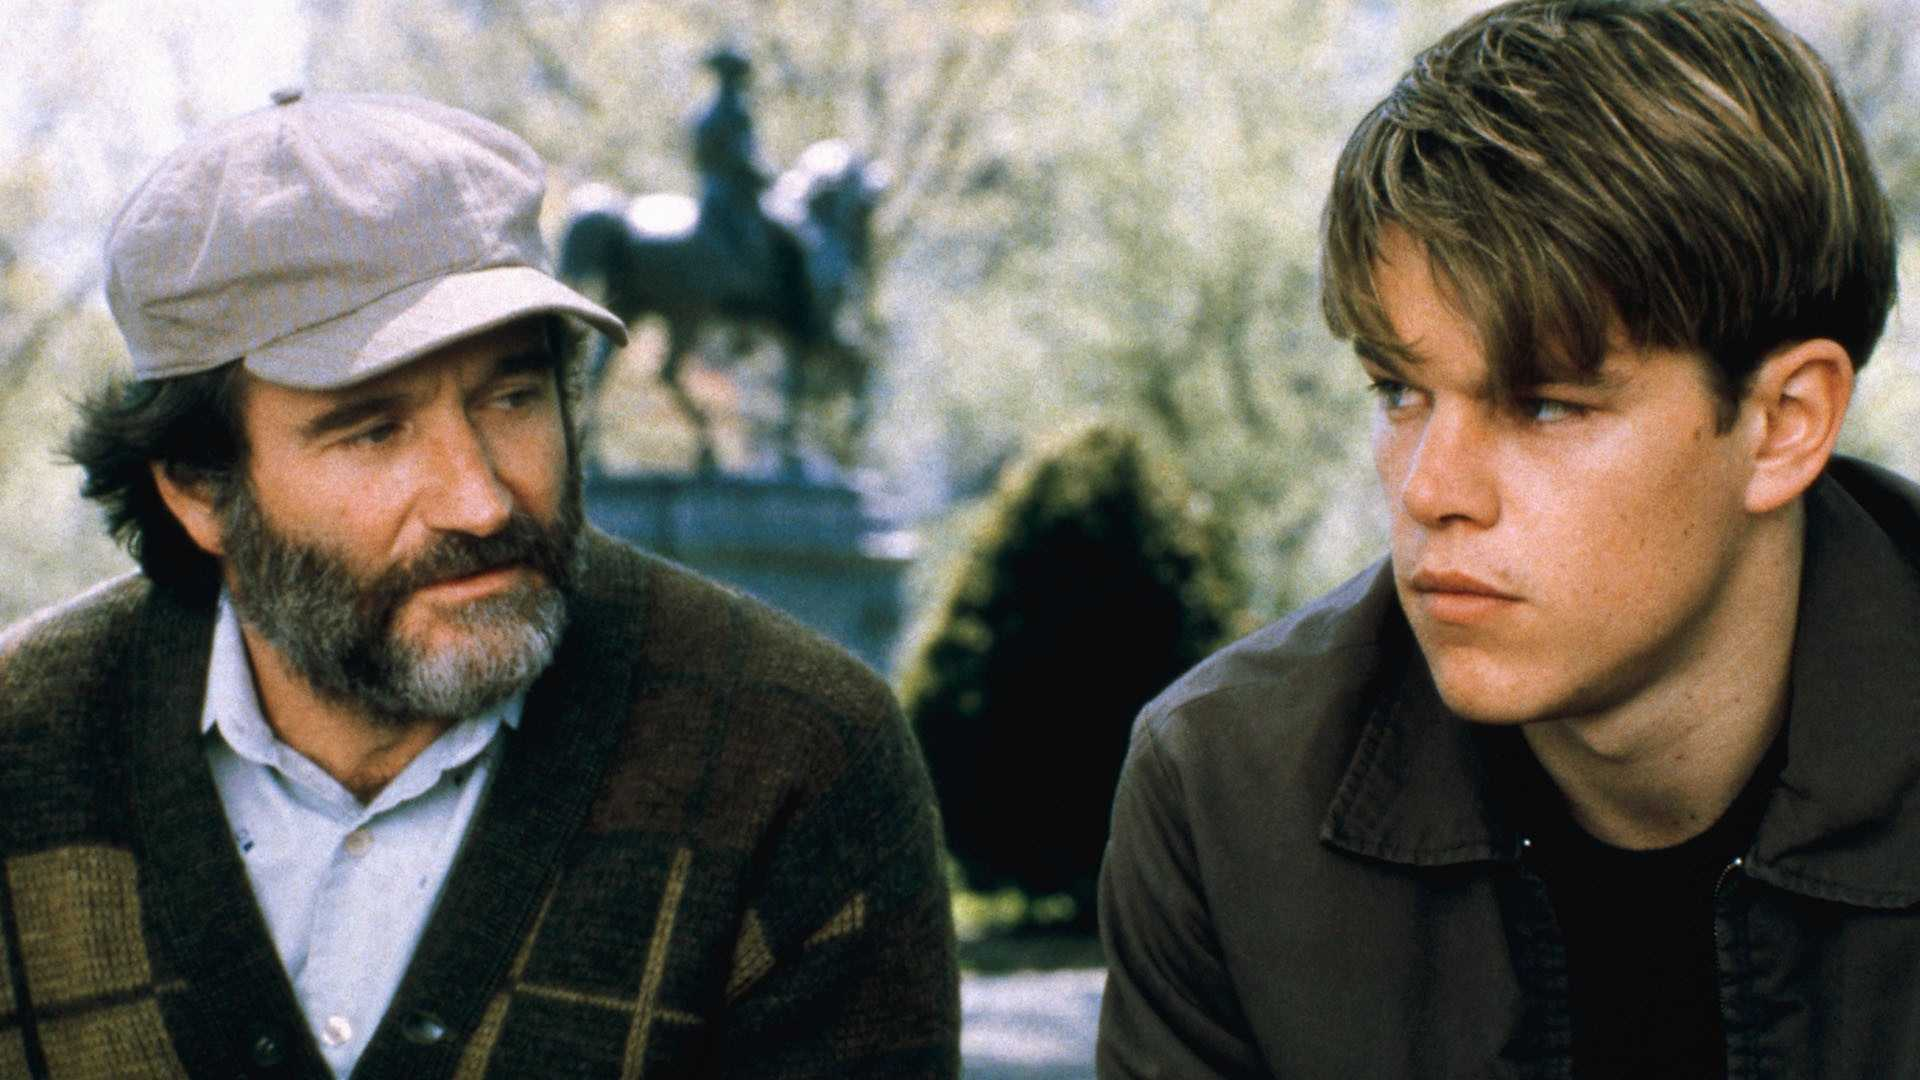 OTD December 5 - Good Will Hunting